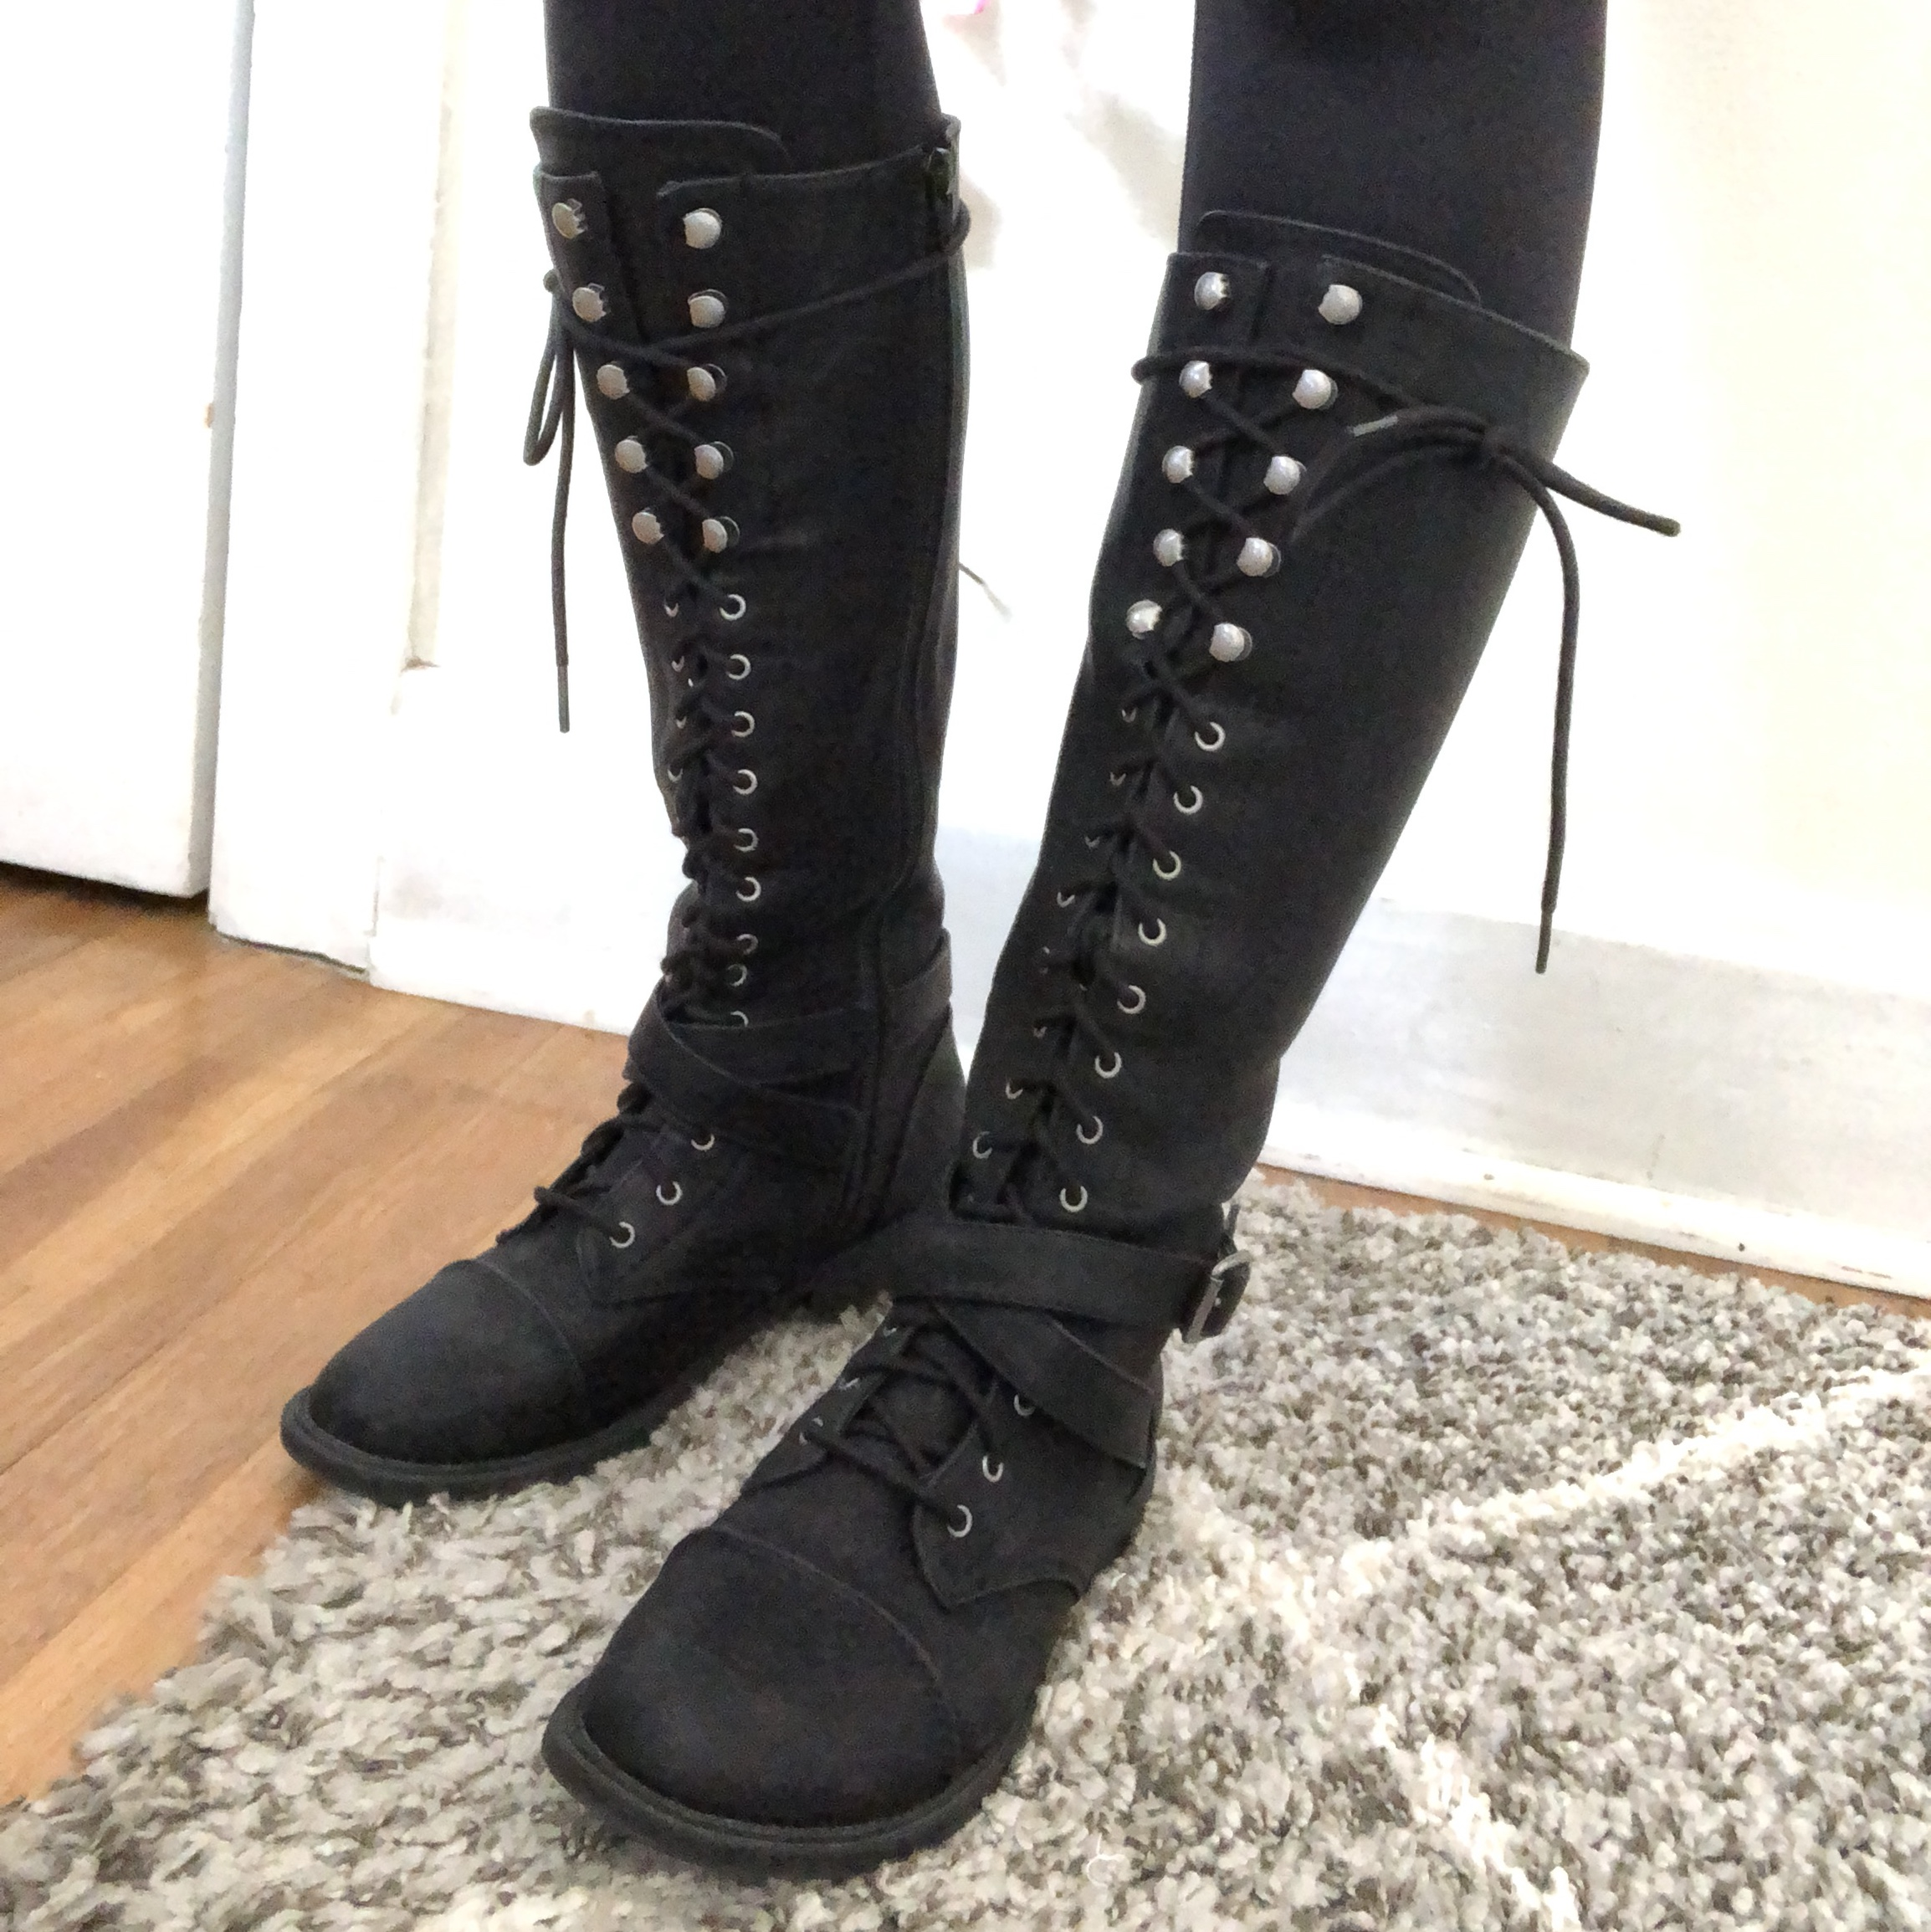 target boots. Wore these maybe - Depop